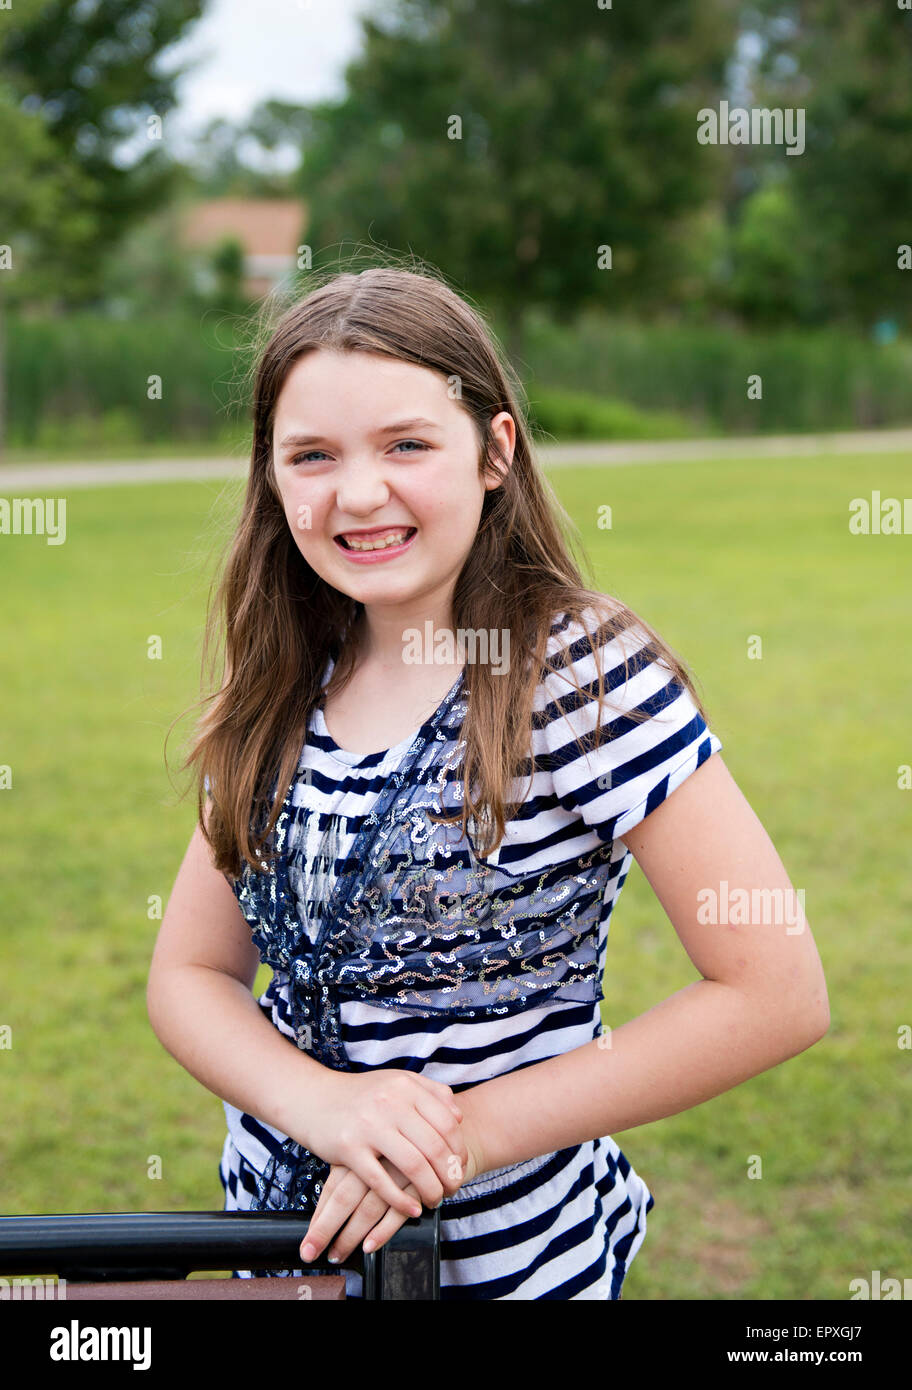 Teenage girl posing for a portrait at an outdoor park - Stock Image